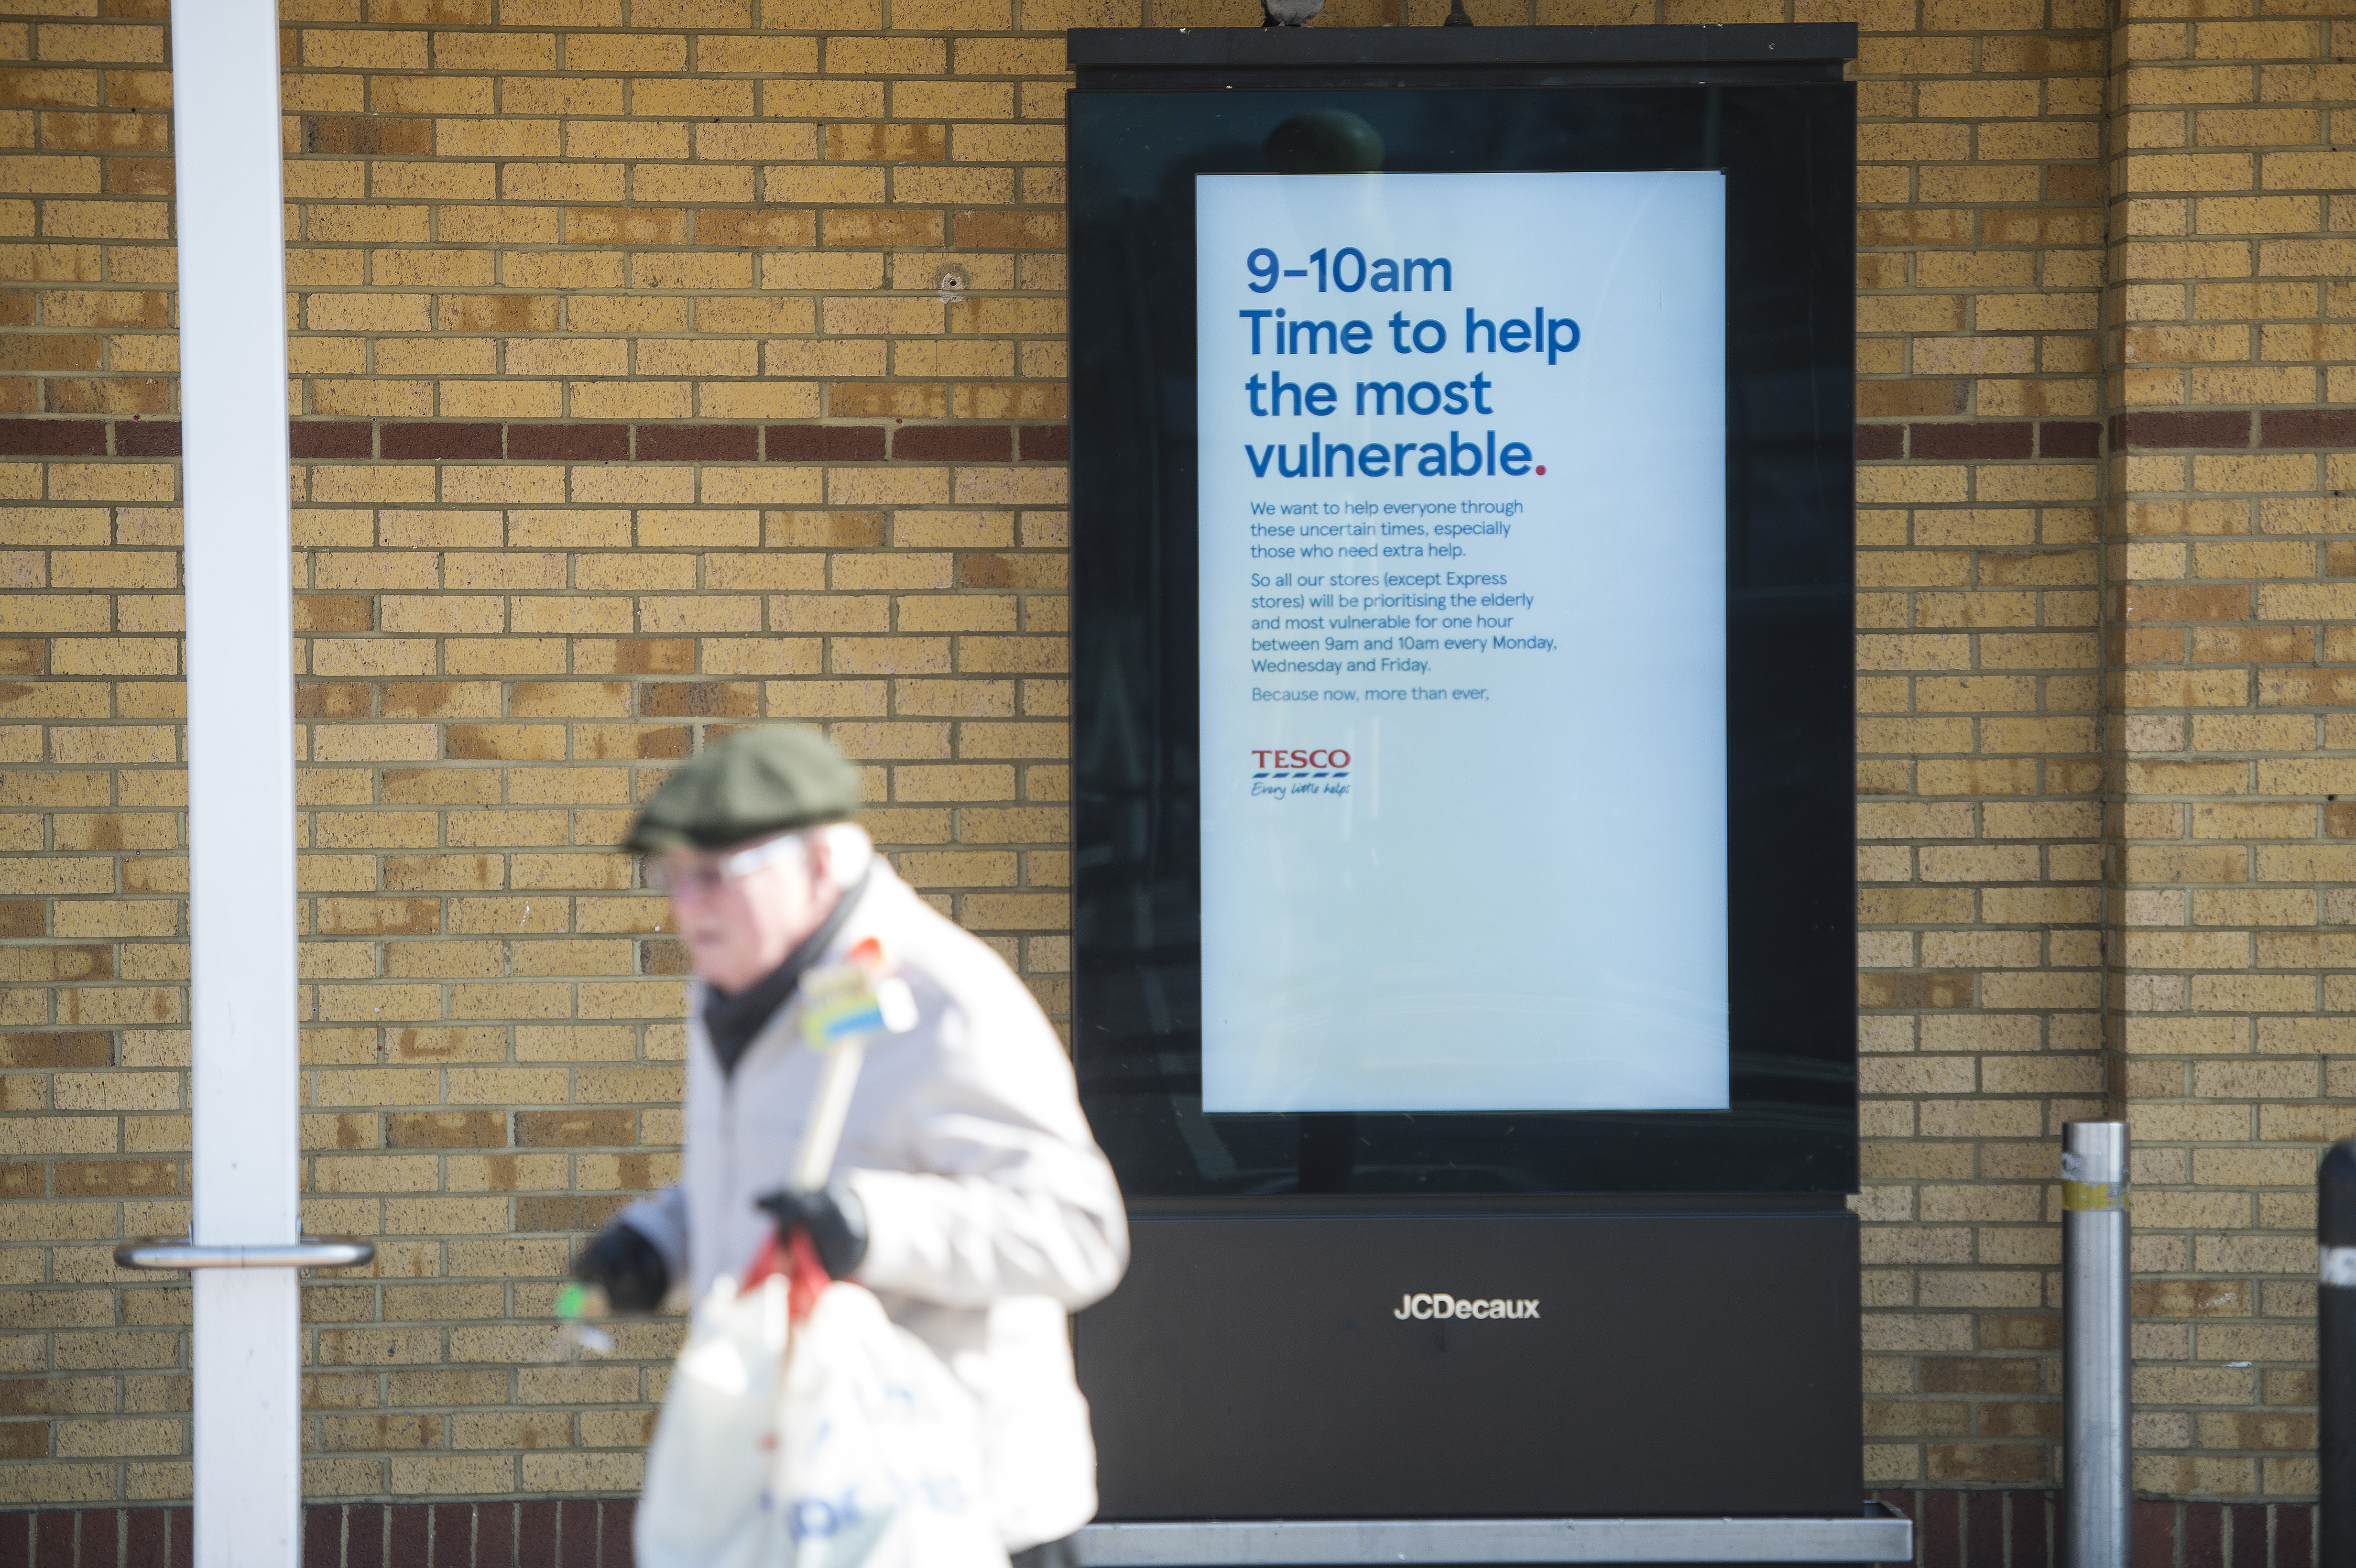 Tesco: brand has allocated priority hours for the vulnerable and elderly